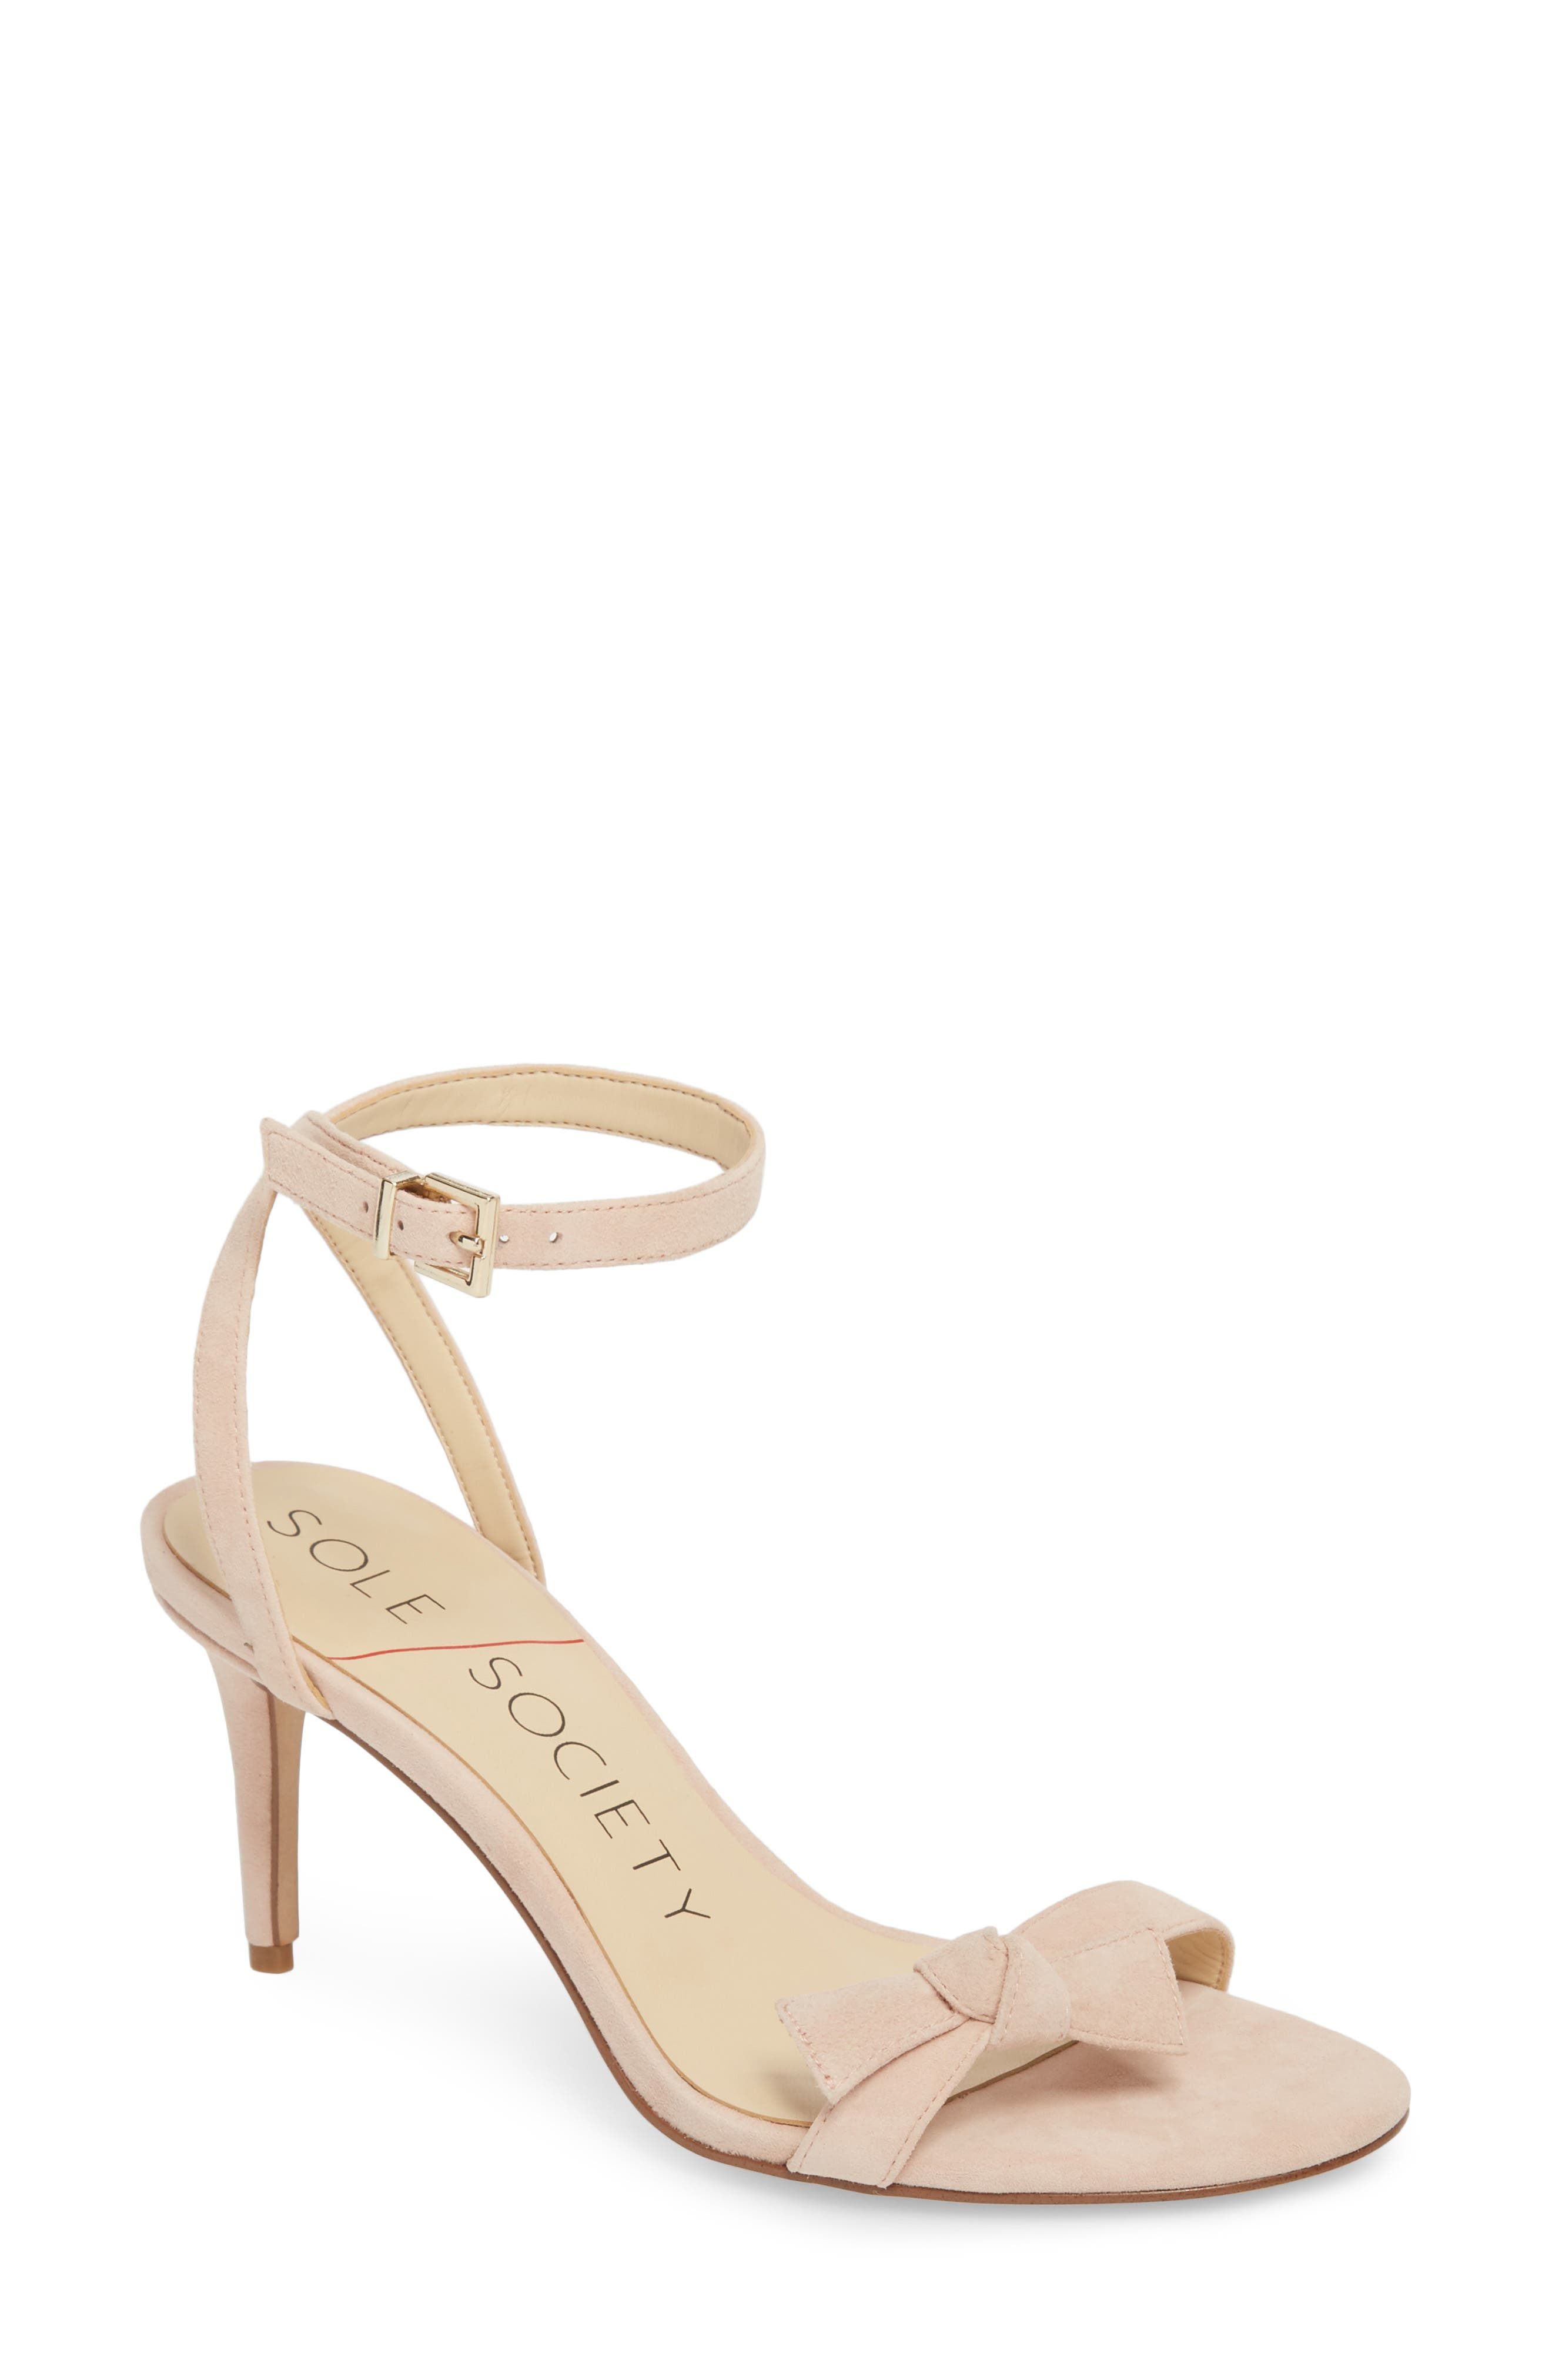 Sole Society Avrilie Knotted Sandal